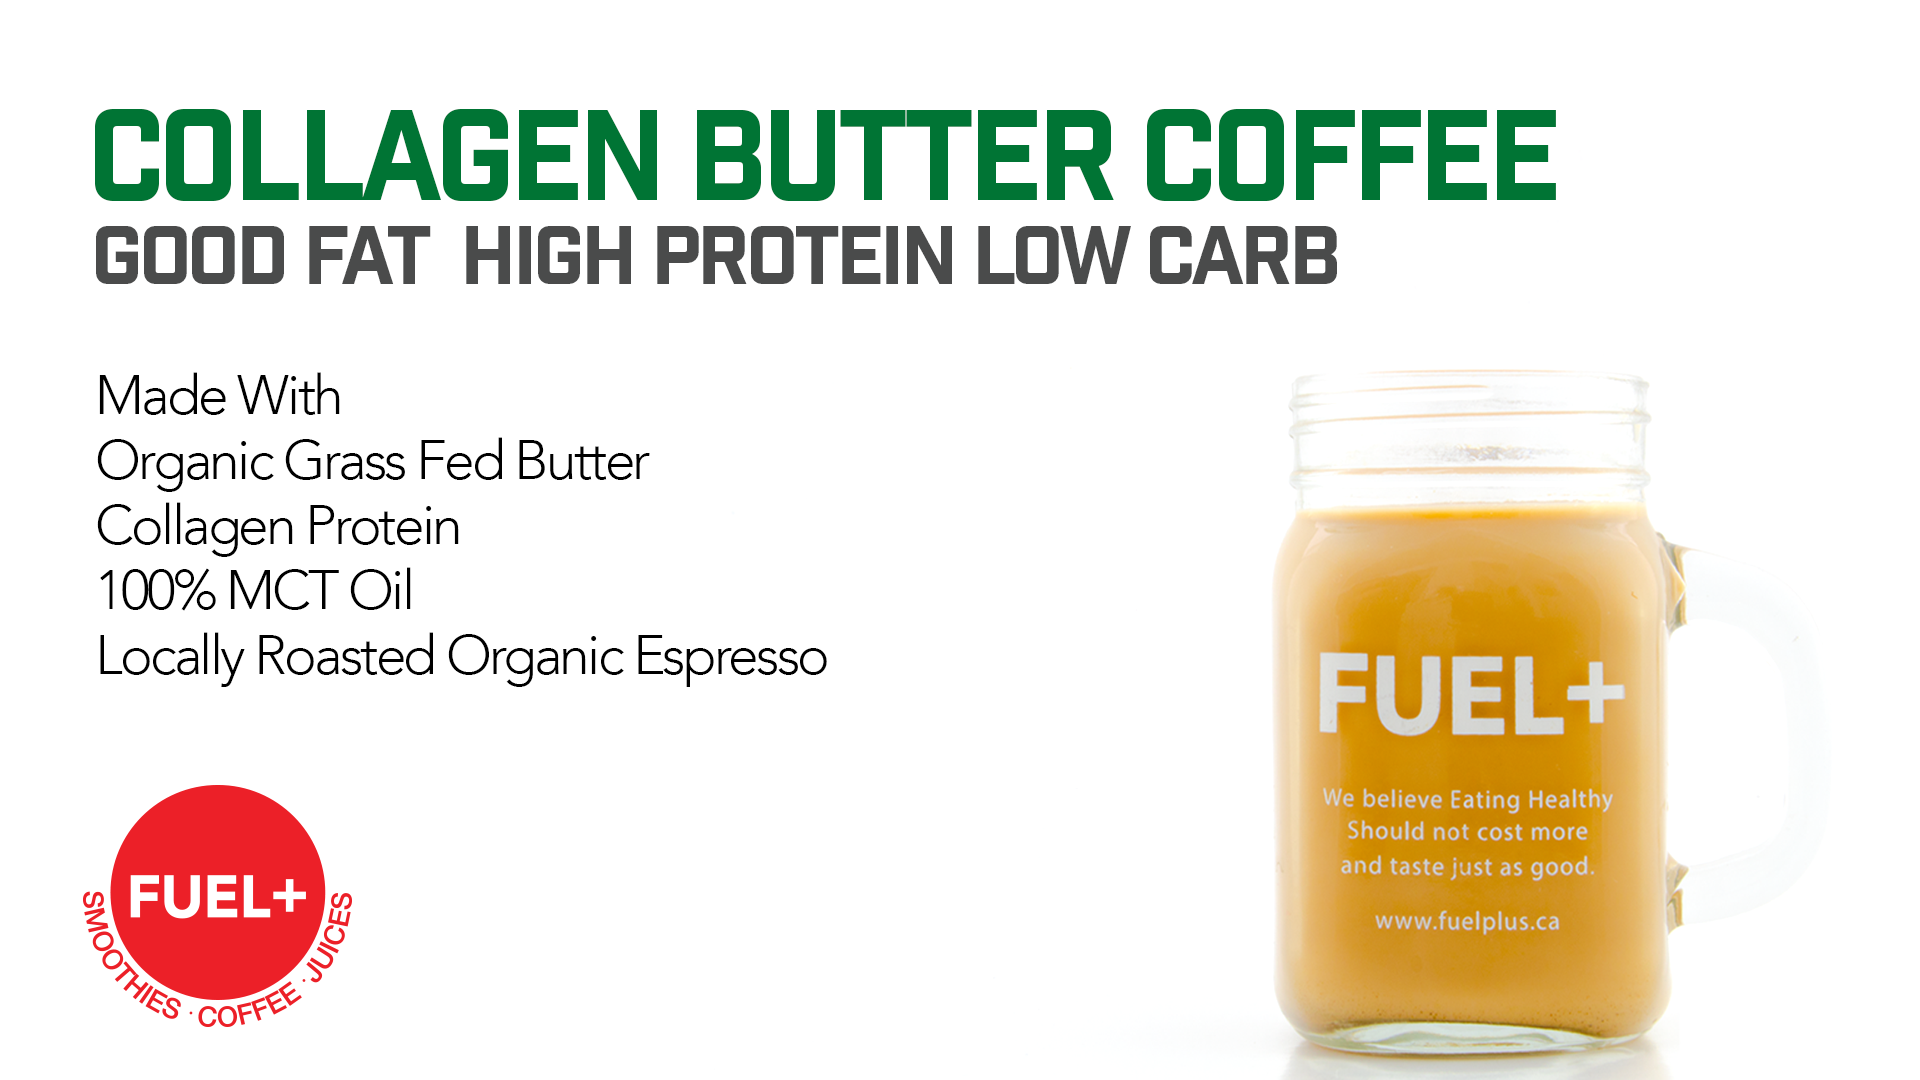 Collagen Butter Coffee